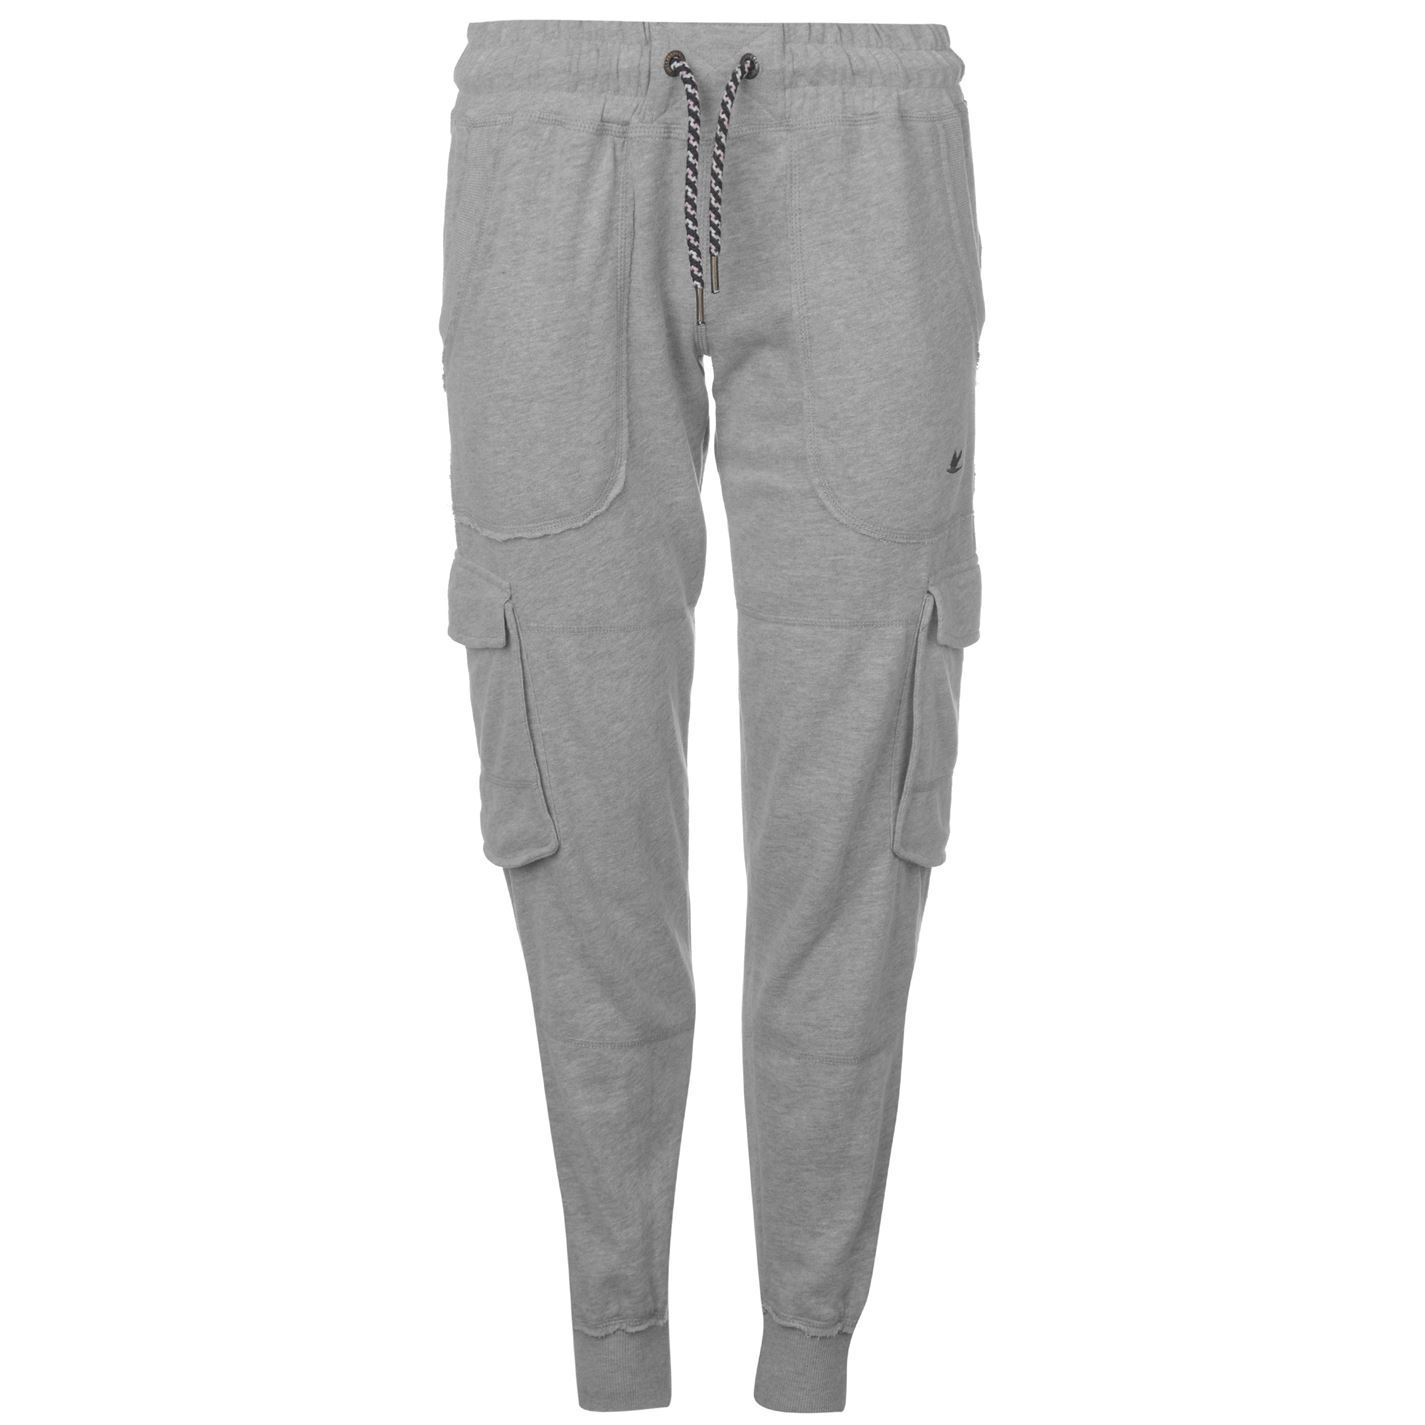 Details about SoulCal Womens Cargo Joggers Fleece Jogging Bottoms Trousers  Pants Lightweight 8c0eb584d